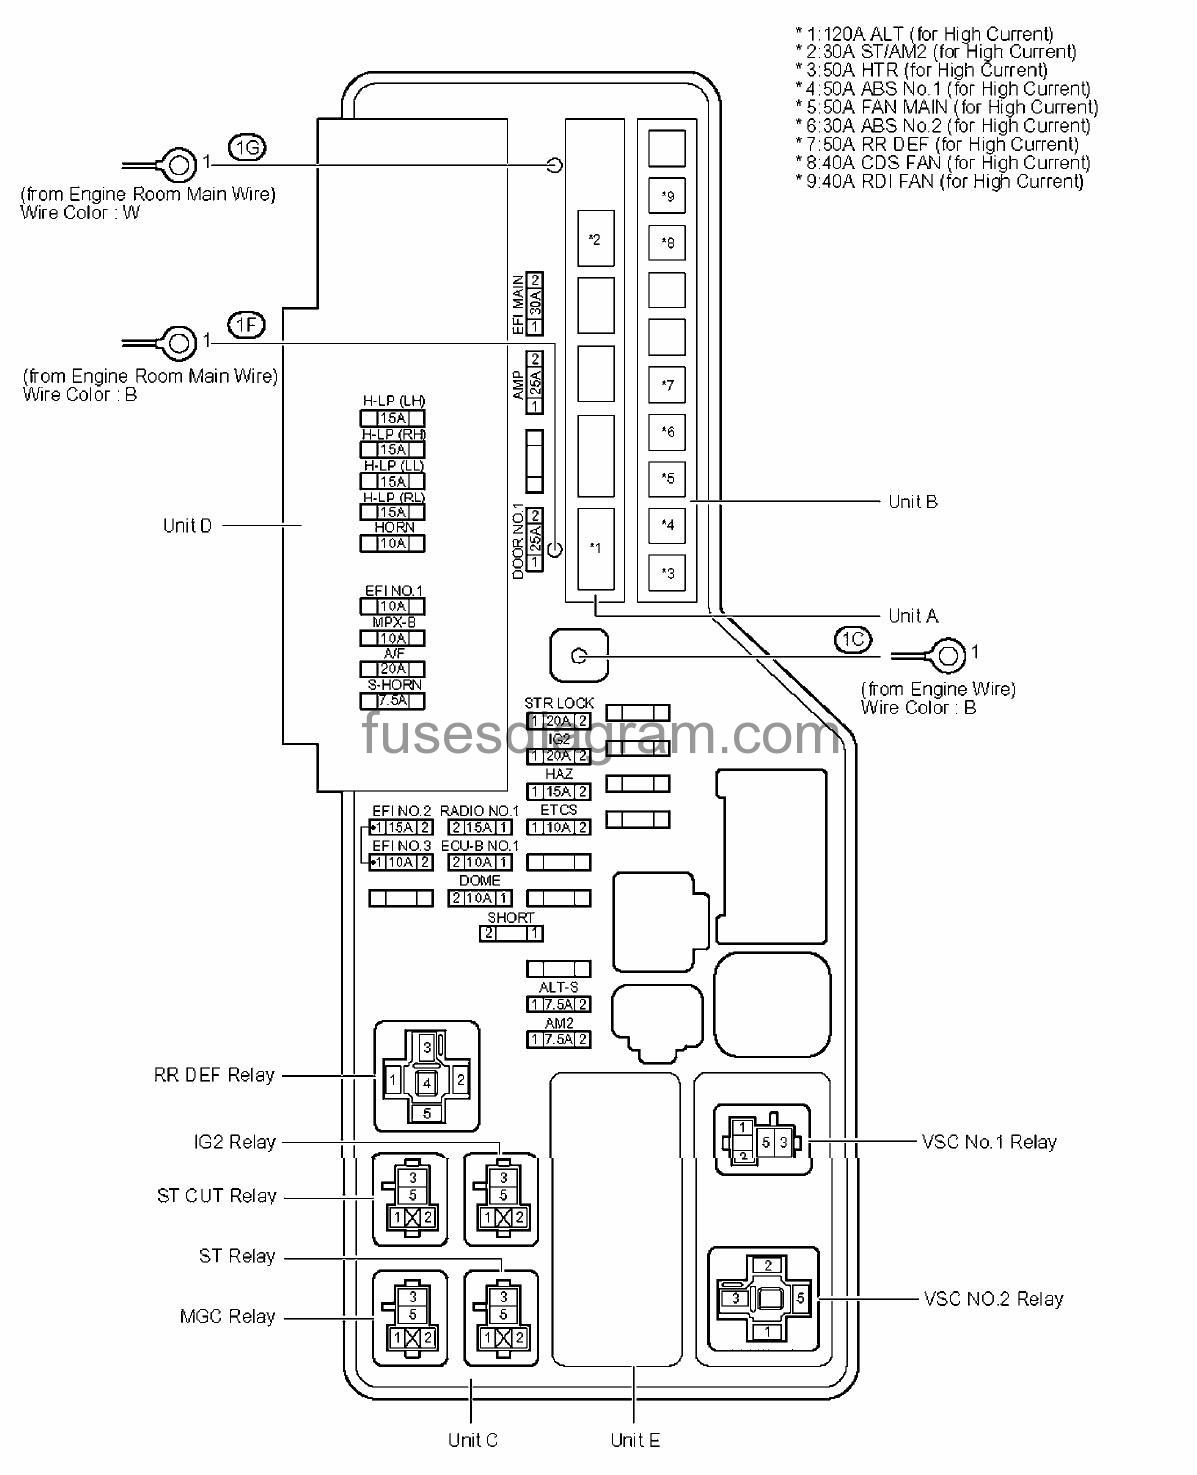 2007 Tahoe Fuse Diagram Free Wiring For You Box In Chrysler Sebring 2002 Library Rh 99 Skriptoase De Ltz